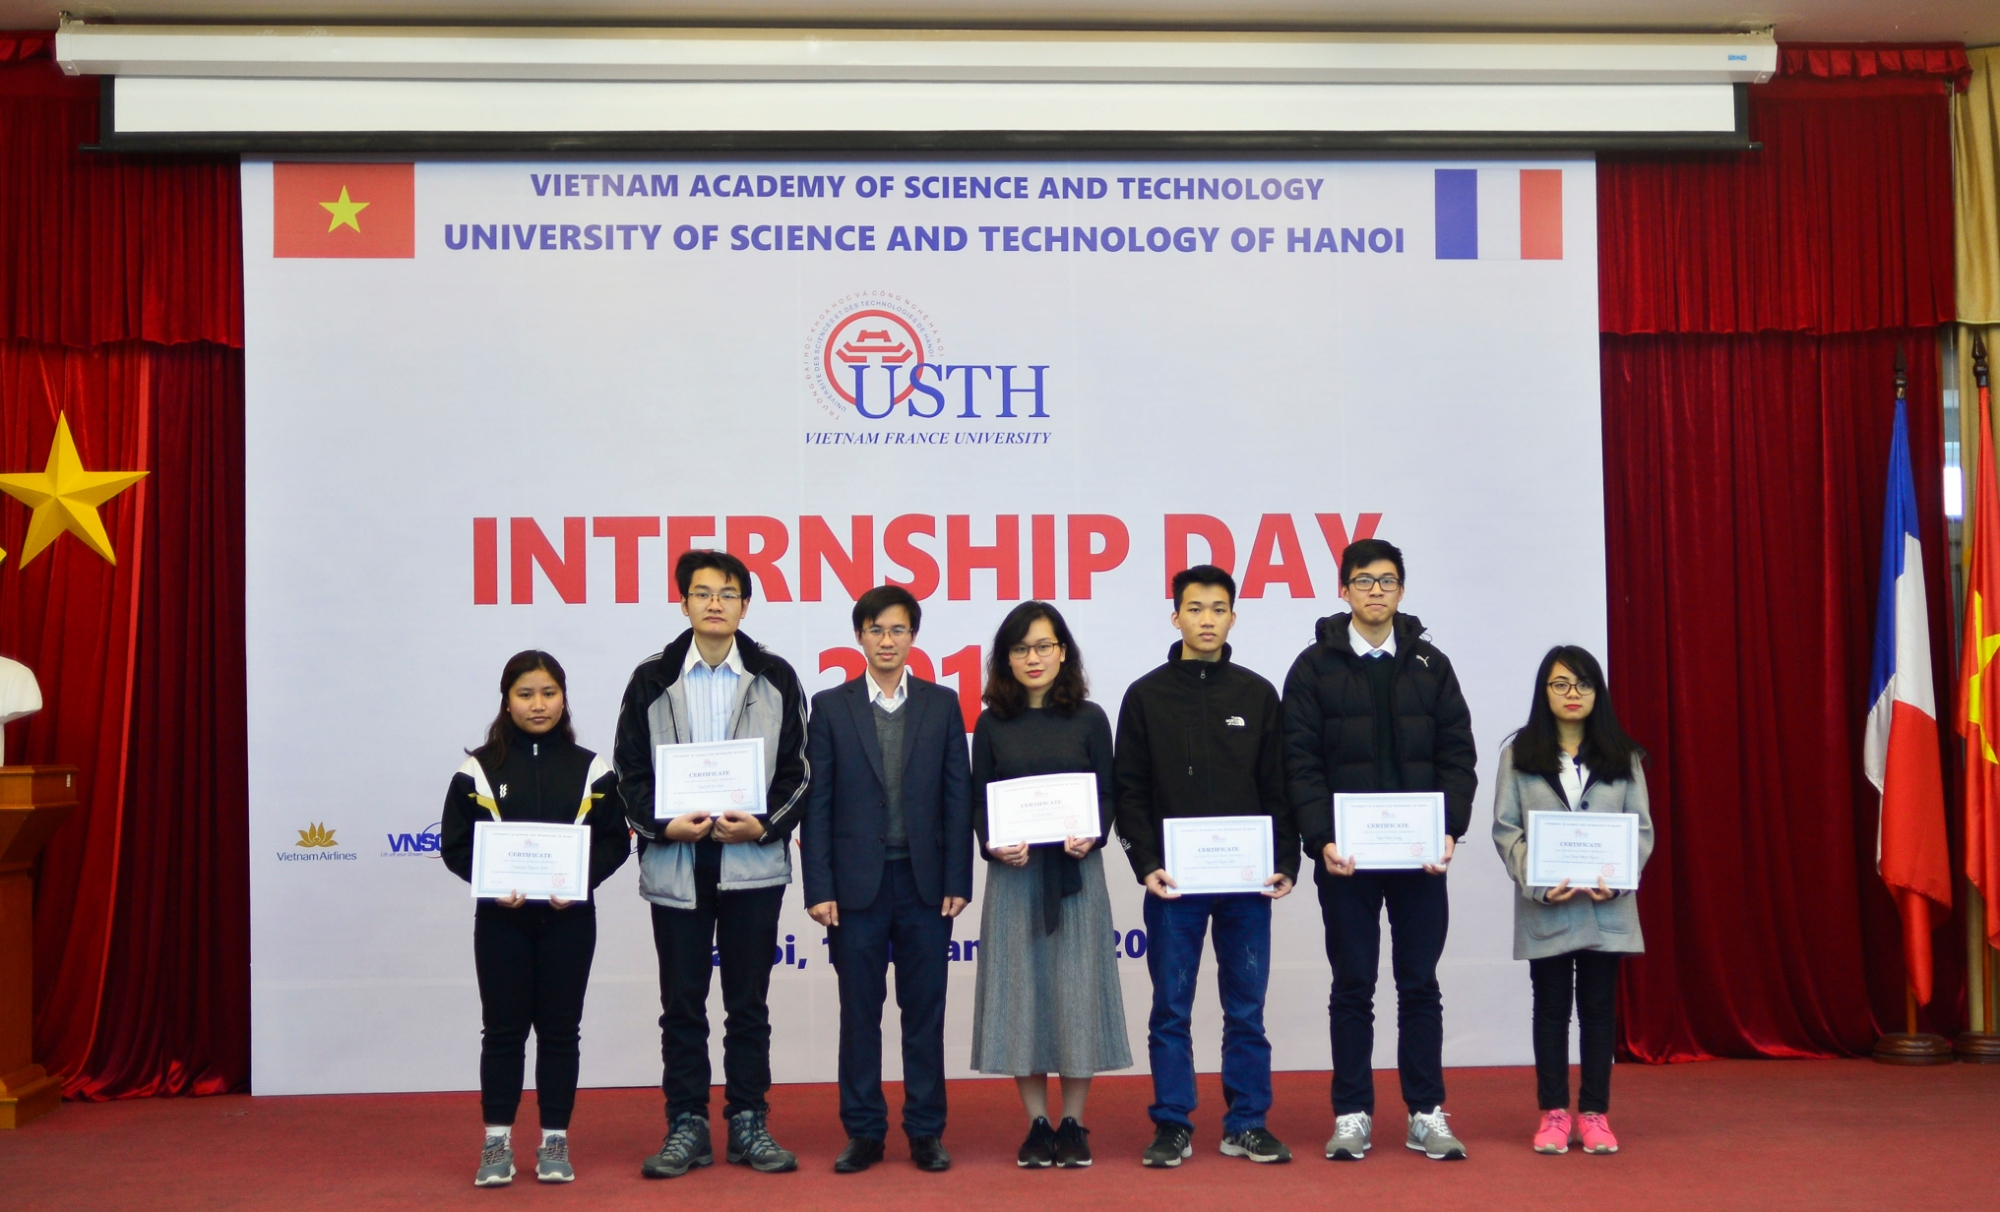 Prof. Nguyen Hai Dang awarded USTH Scholarship for 12 excellent students in the academic year 2018-2019